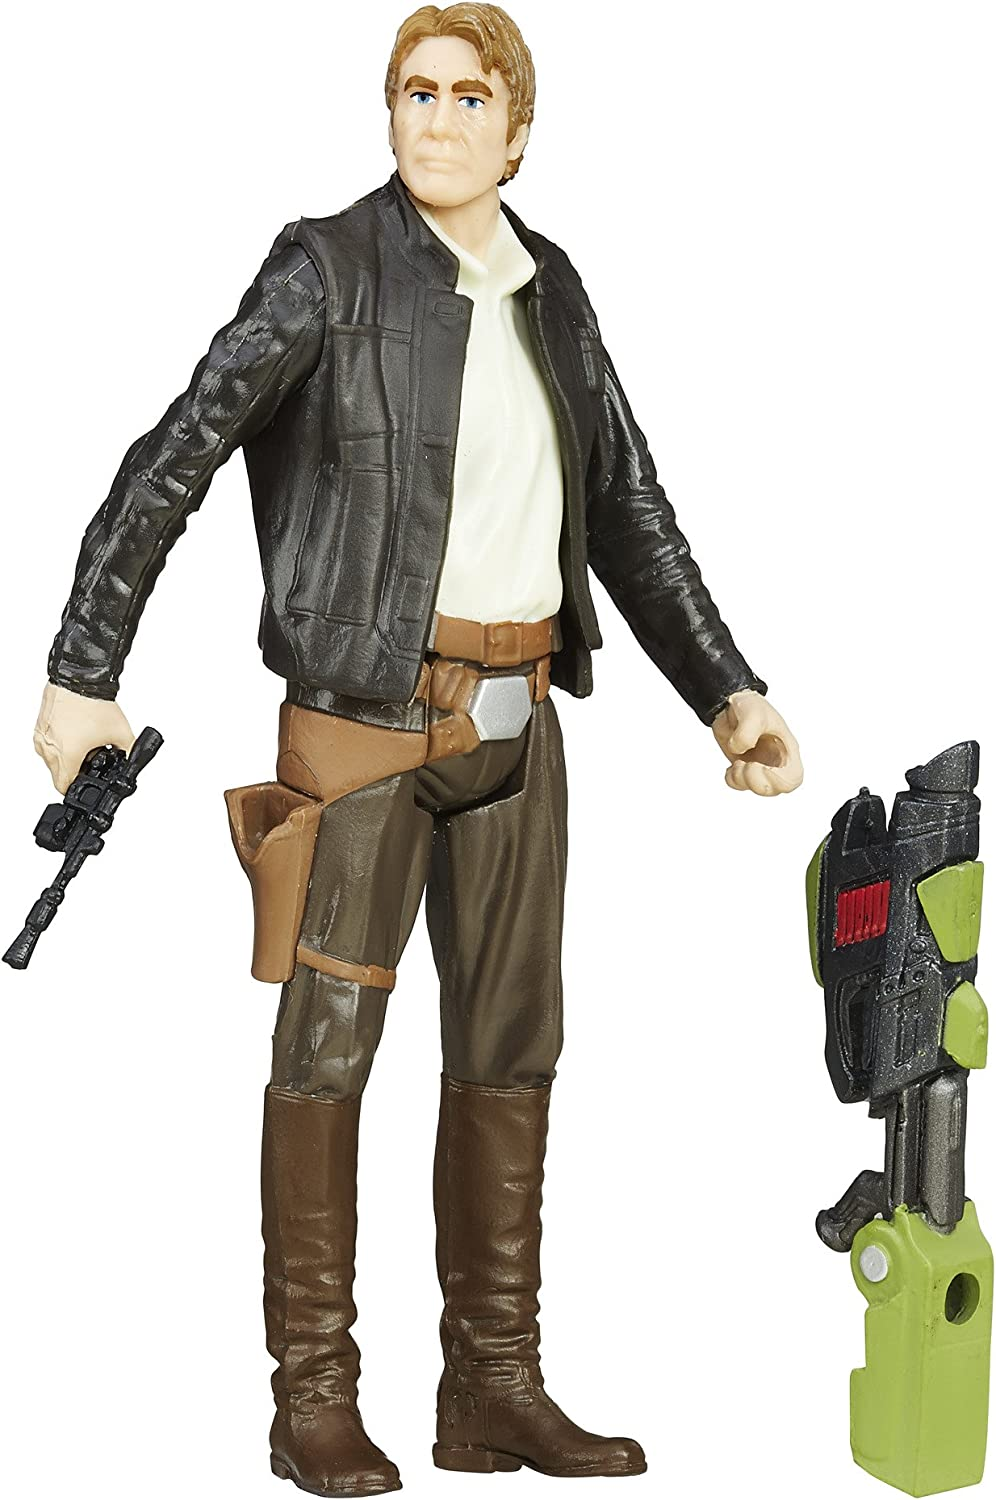 Star Wars 3.75 Inch Han Solo Action Figure The Force Awakens